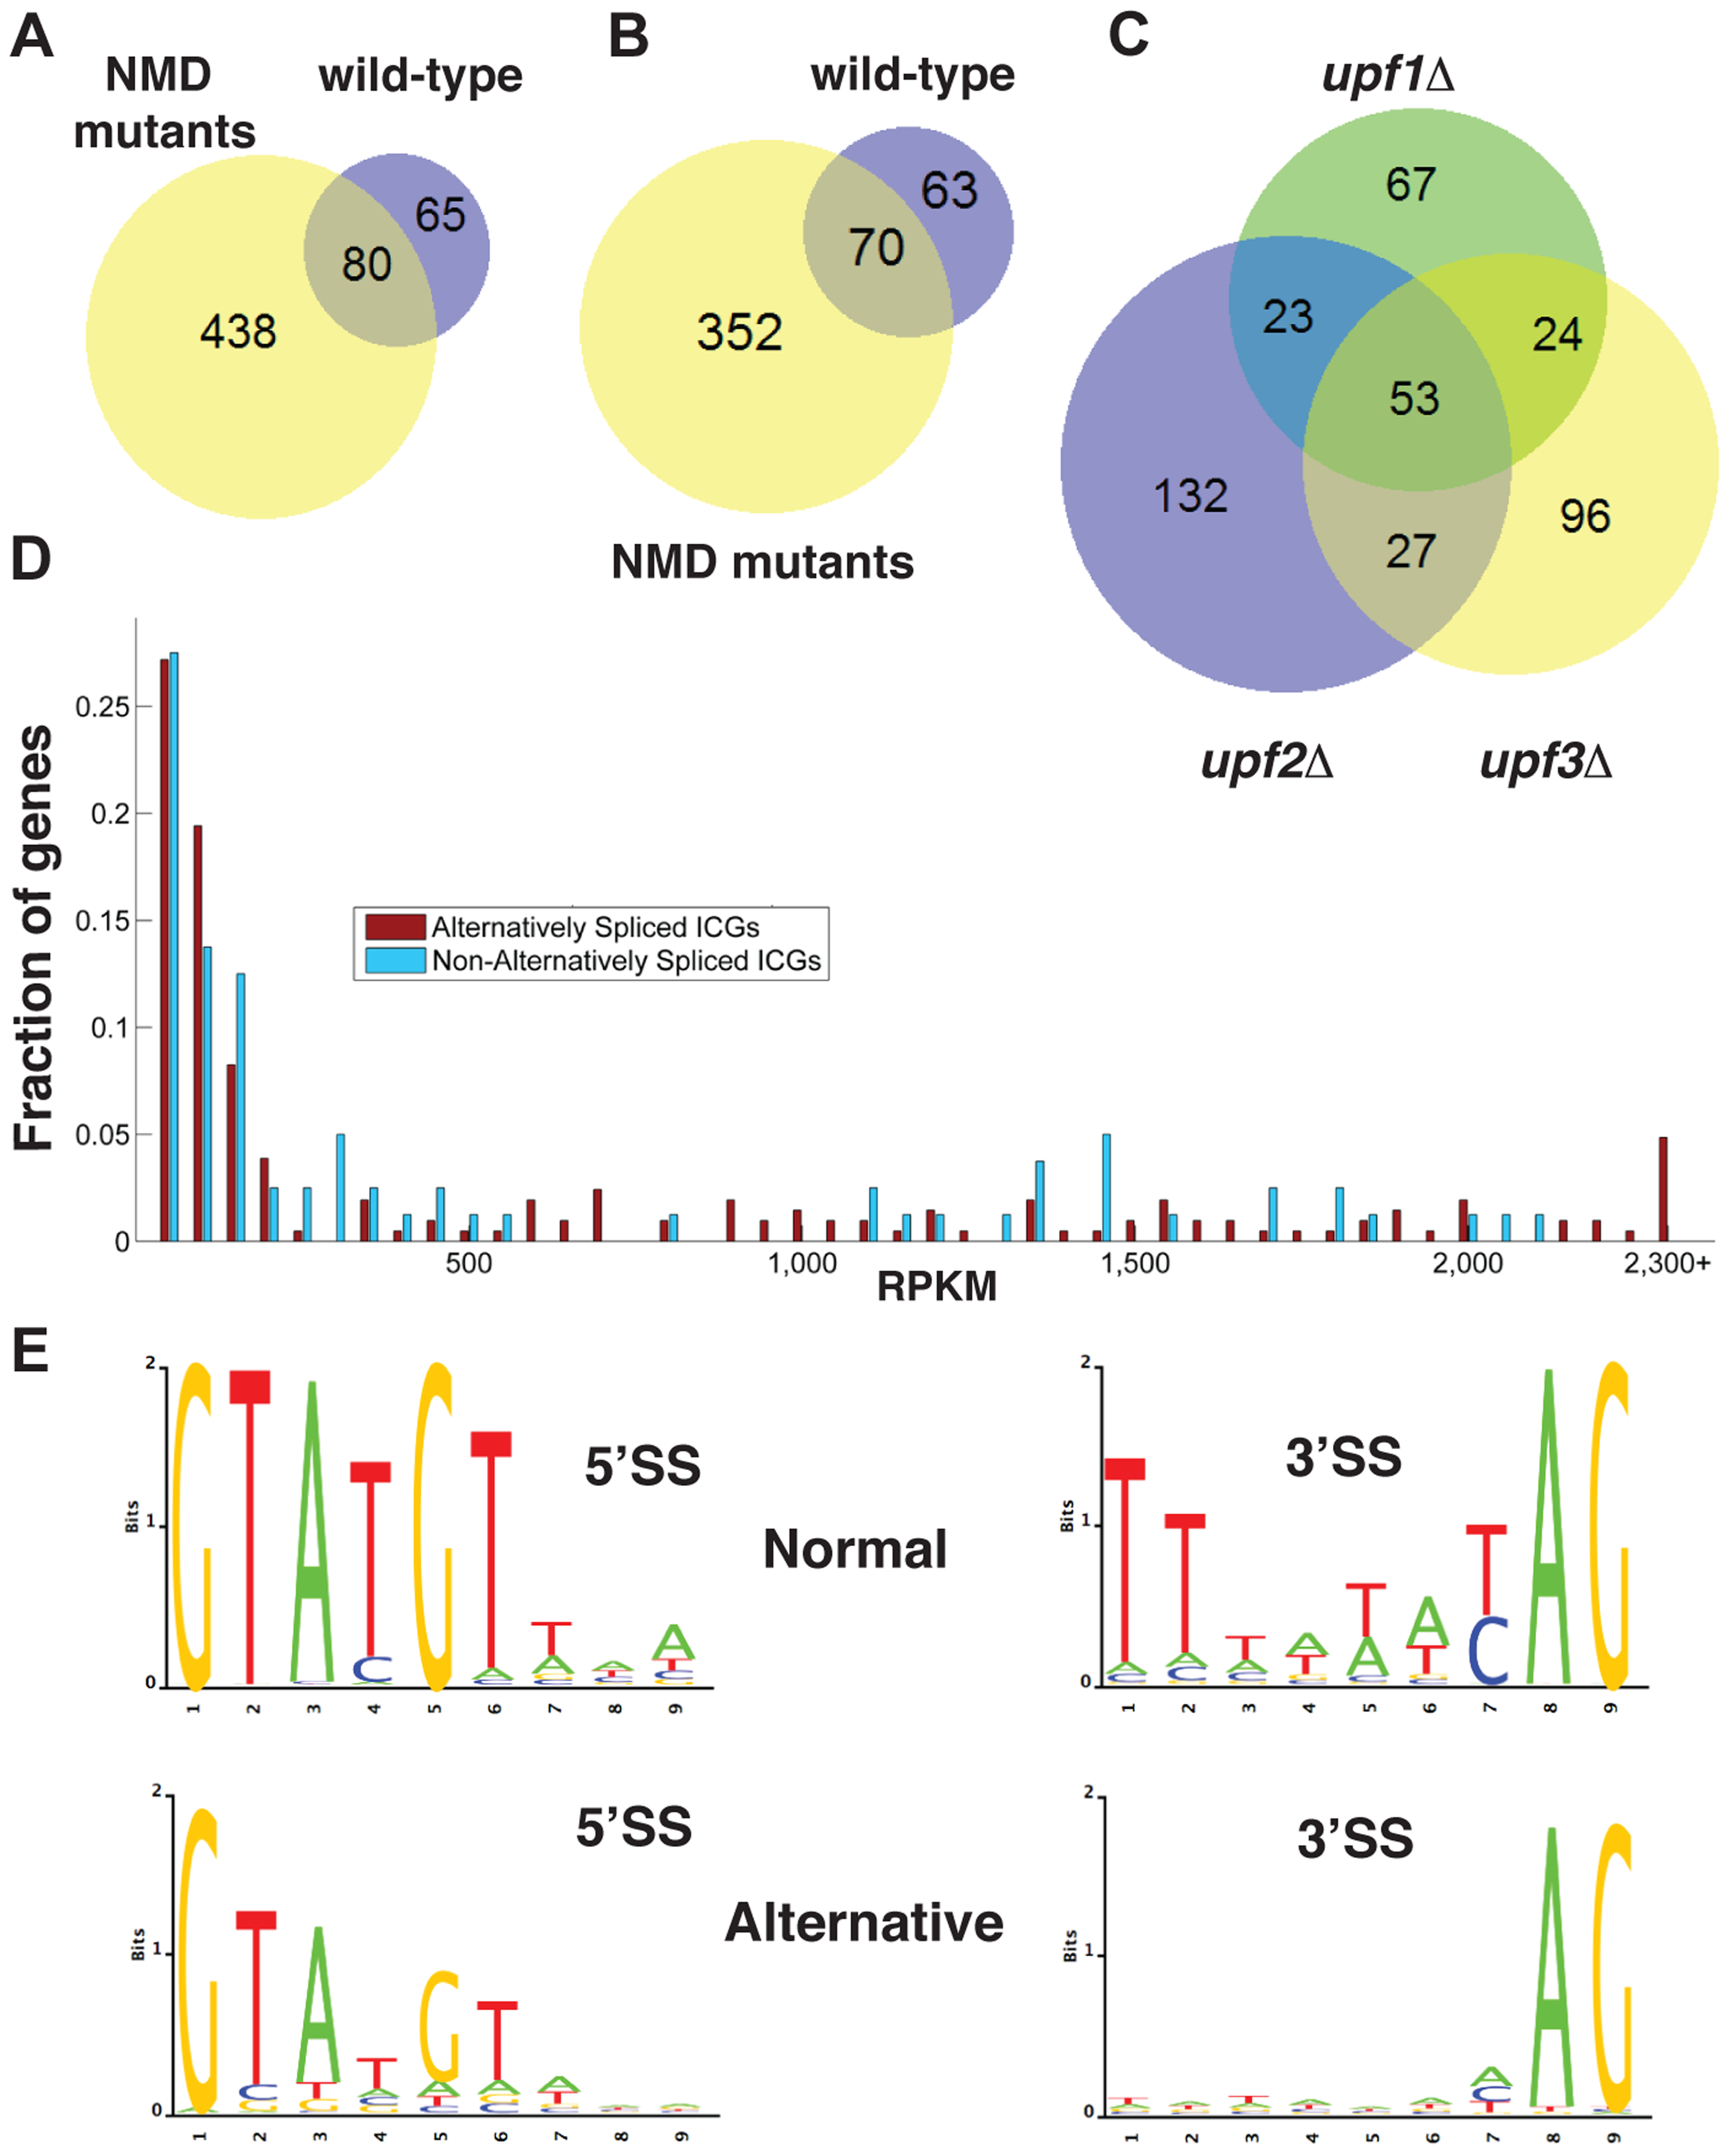 Bioinformatics analysis of alternative splice site usage in wild-type and NMD mutants.